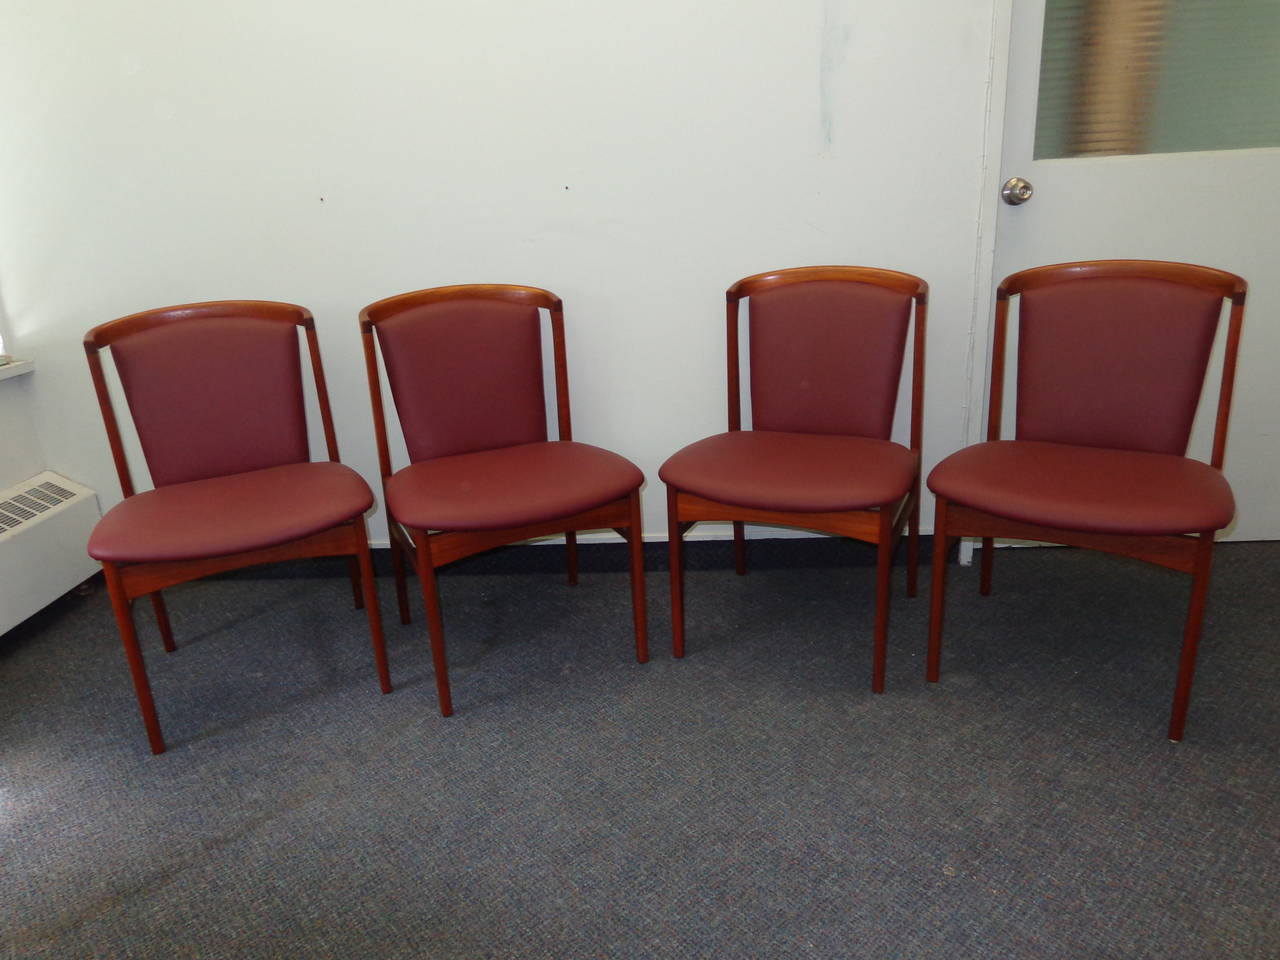 Teak dining chairs by Erik Buch reupholstered in leather.